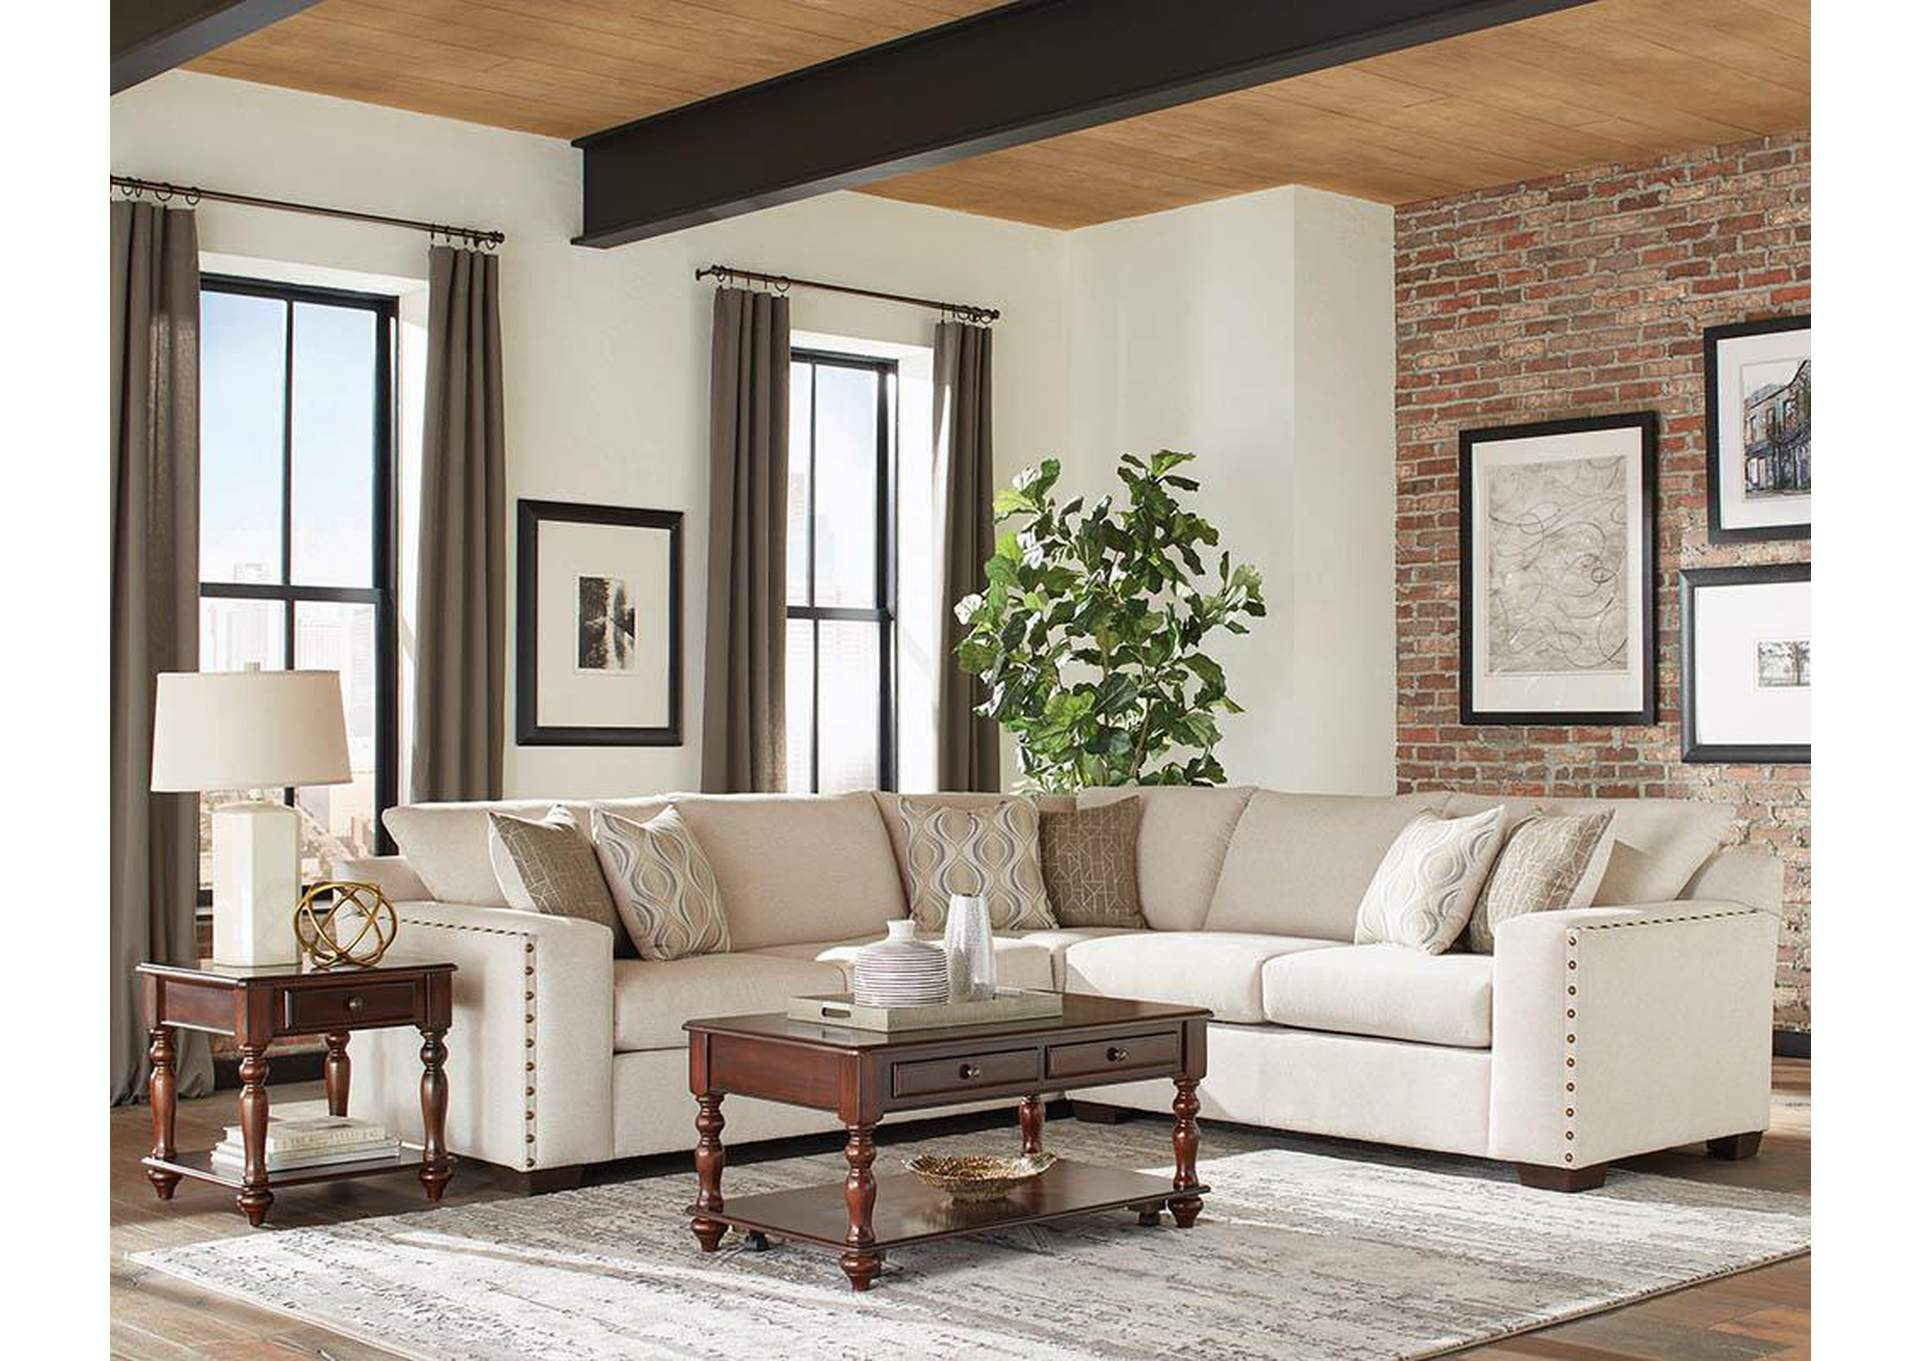 White Stationary Sectional,Coaster Furniture